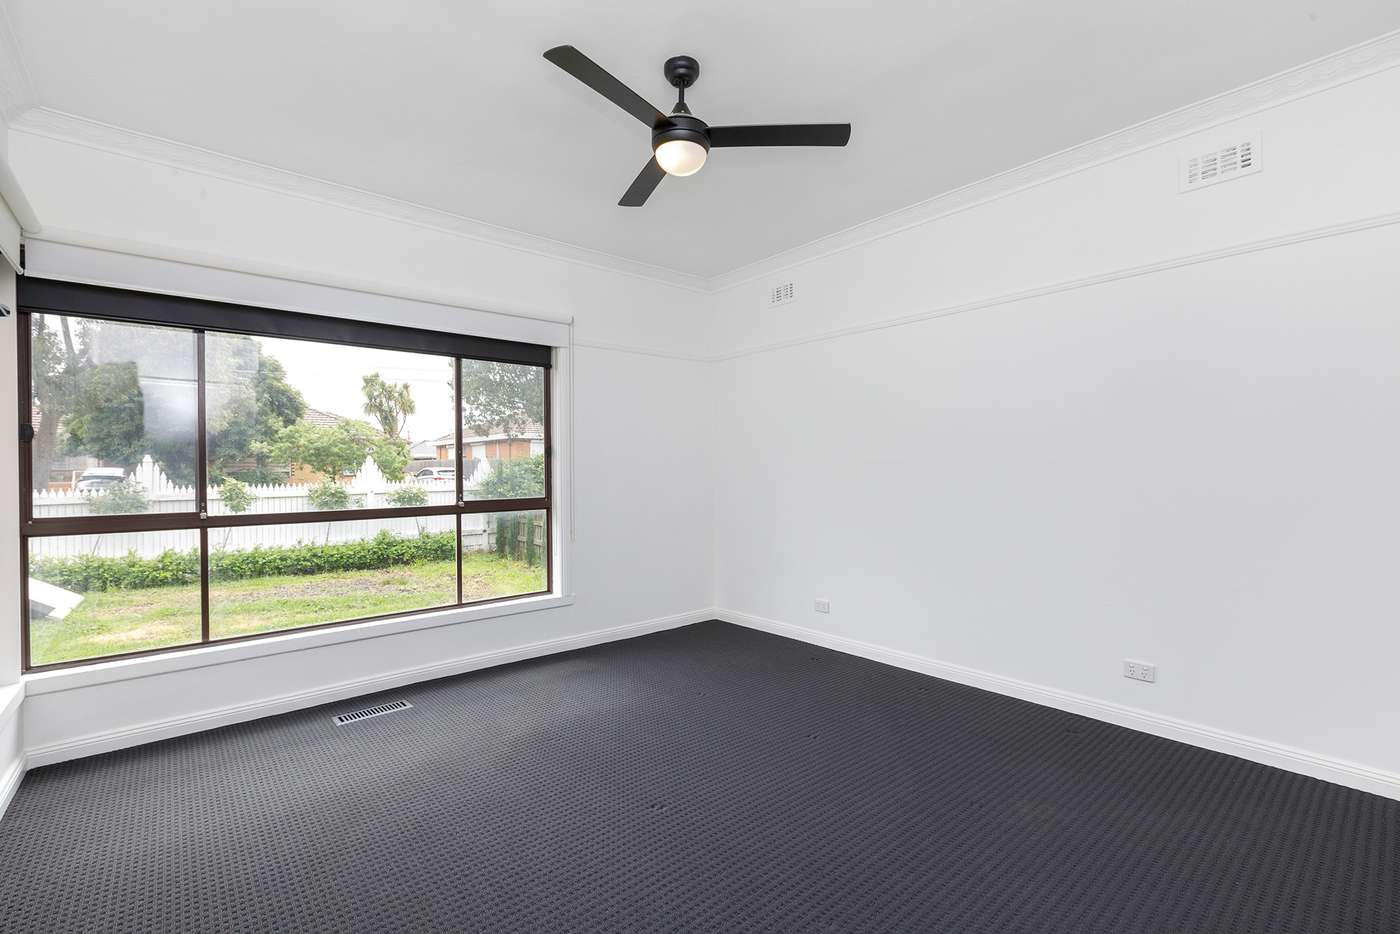 Fifth view of Homely house listing, 1/11 Glengala Road., Sunshine West VIC 3020